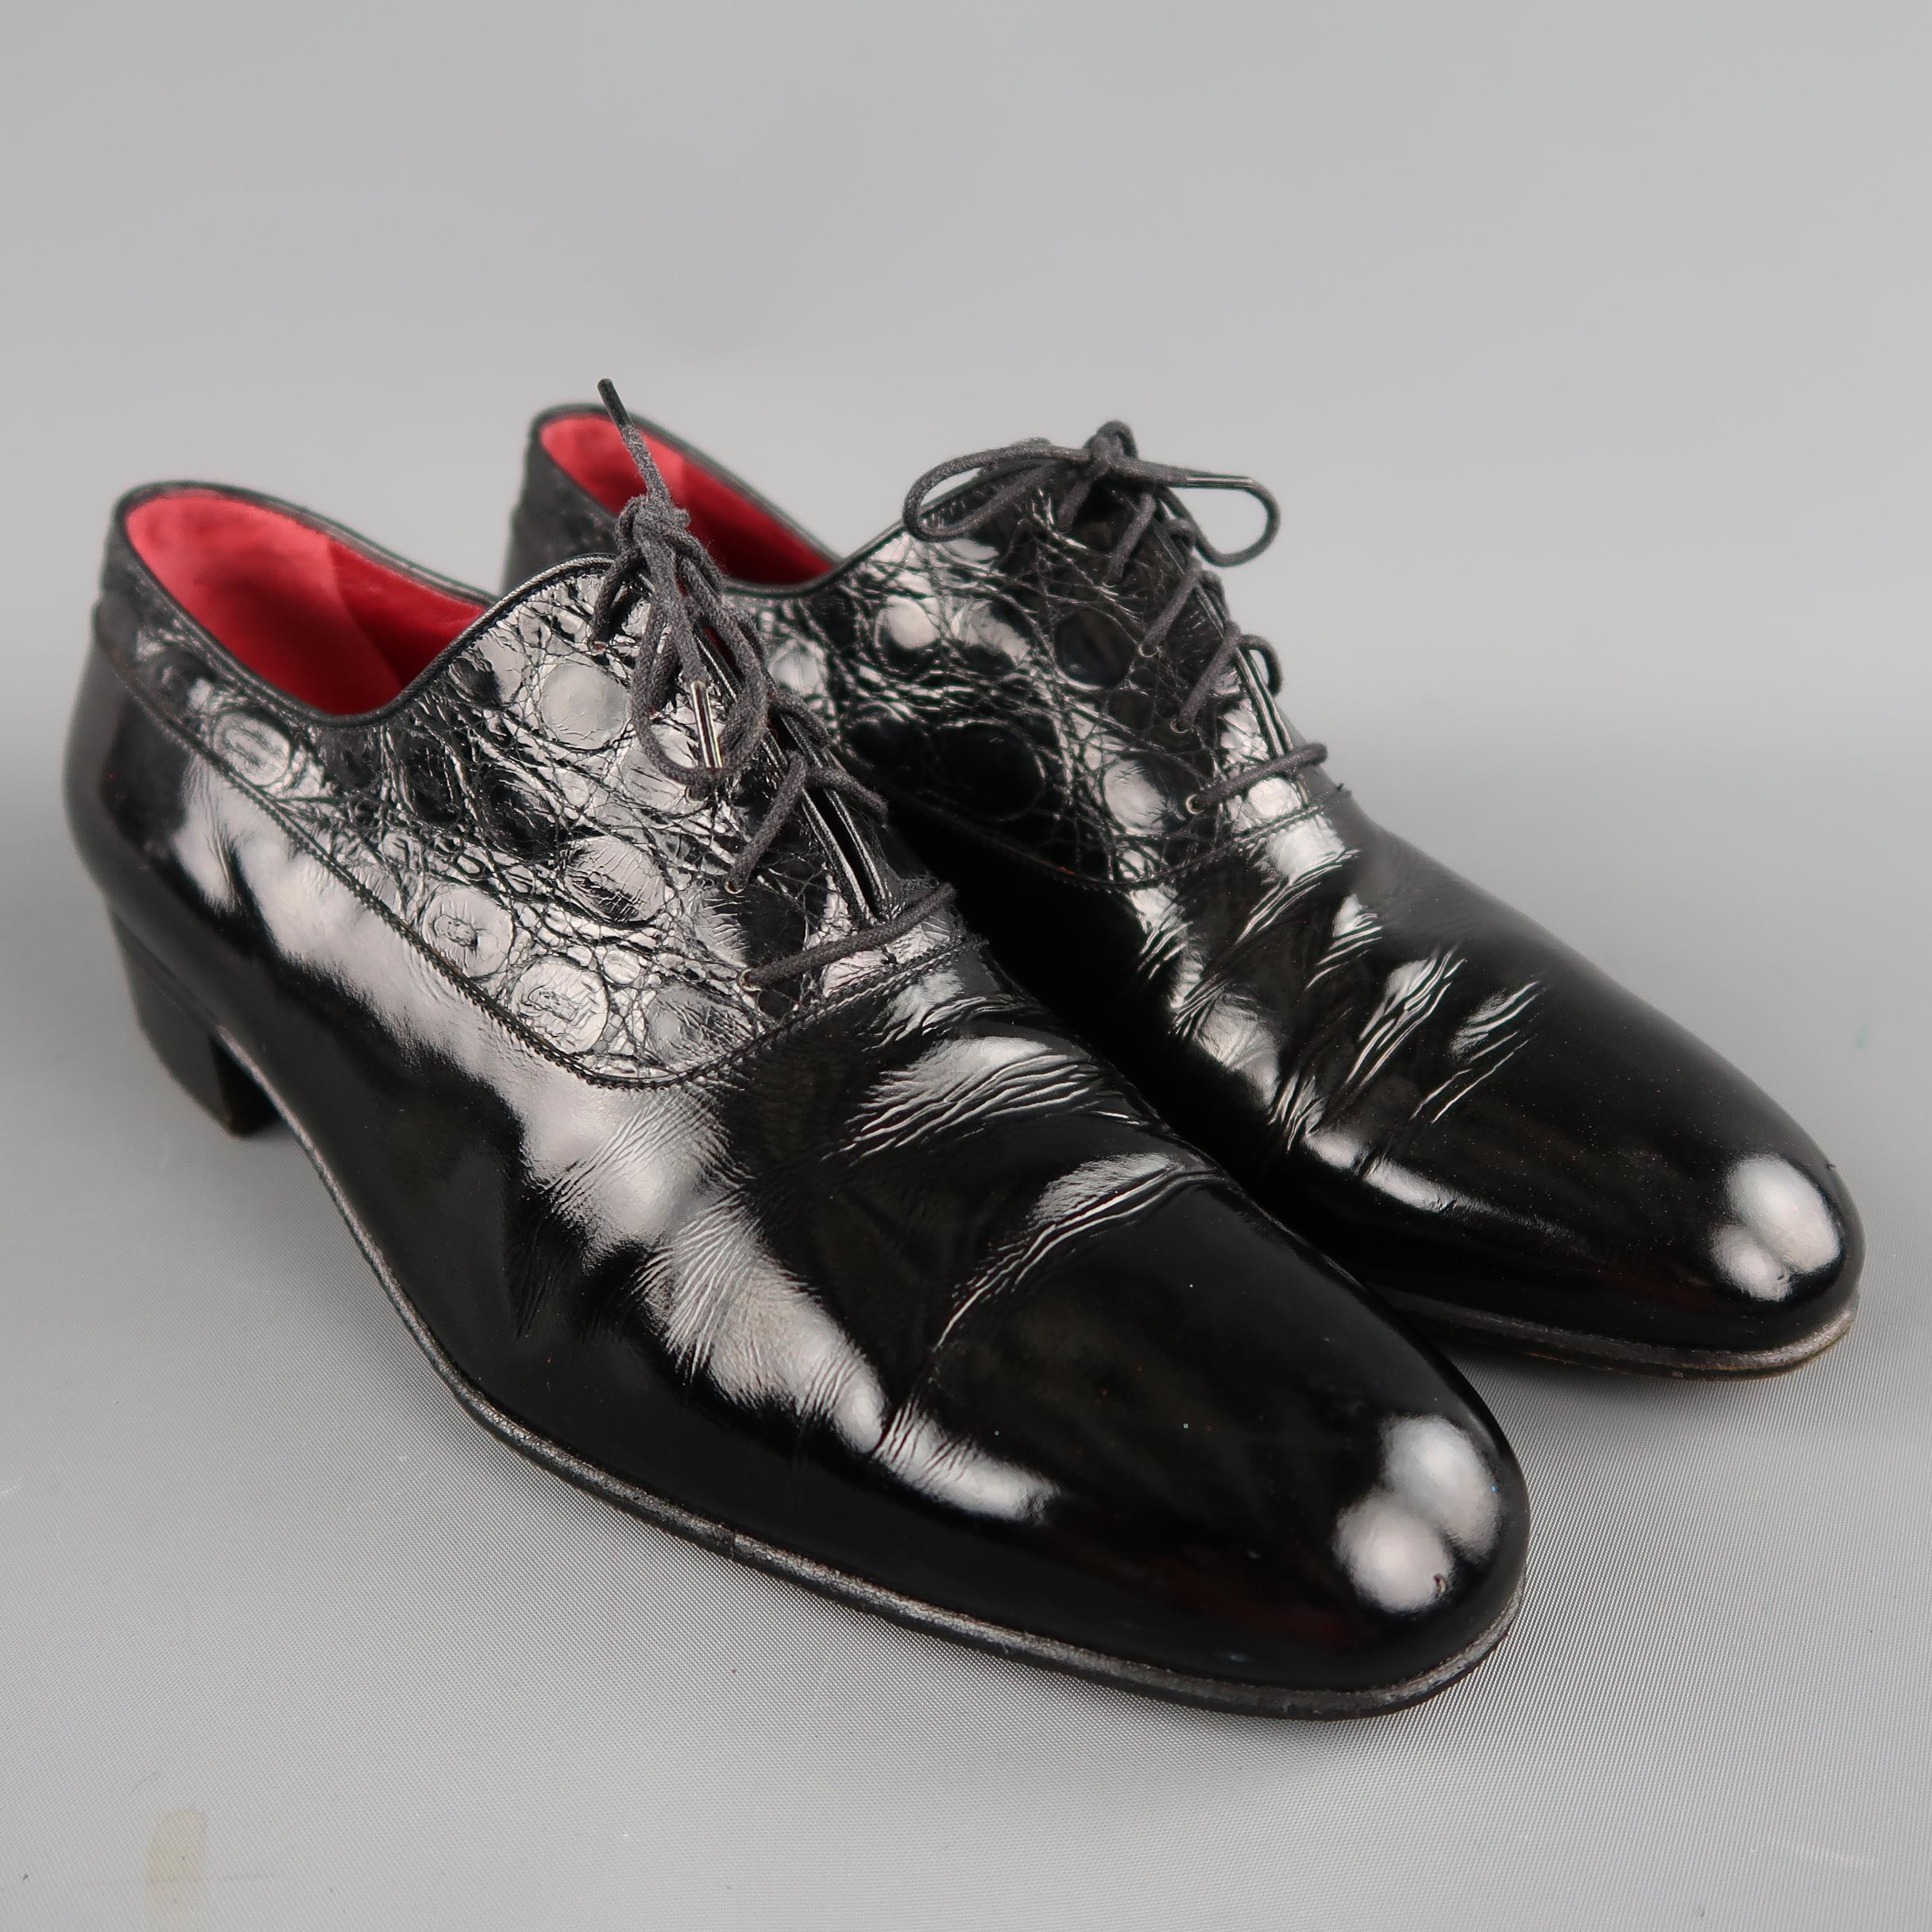 Vintage Gucci Size 95 Black Mixed Patent Leather Lace Up Dress Shoes